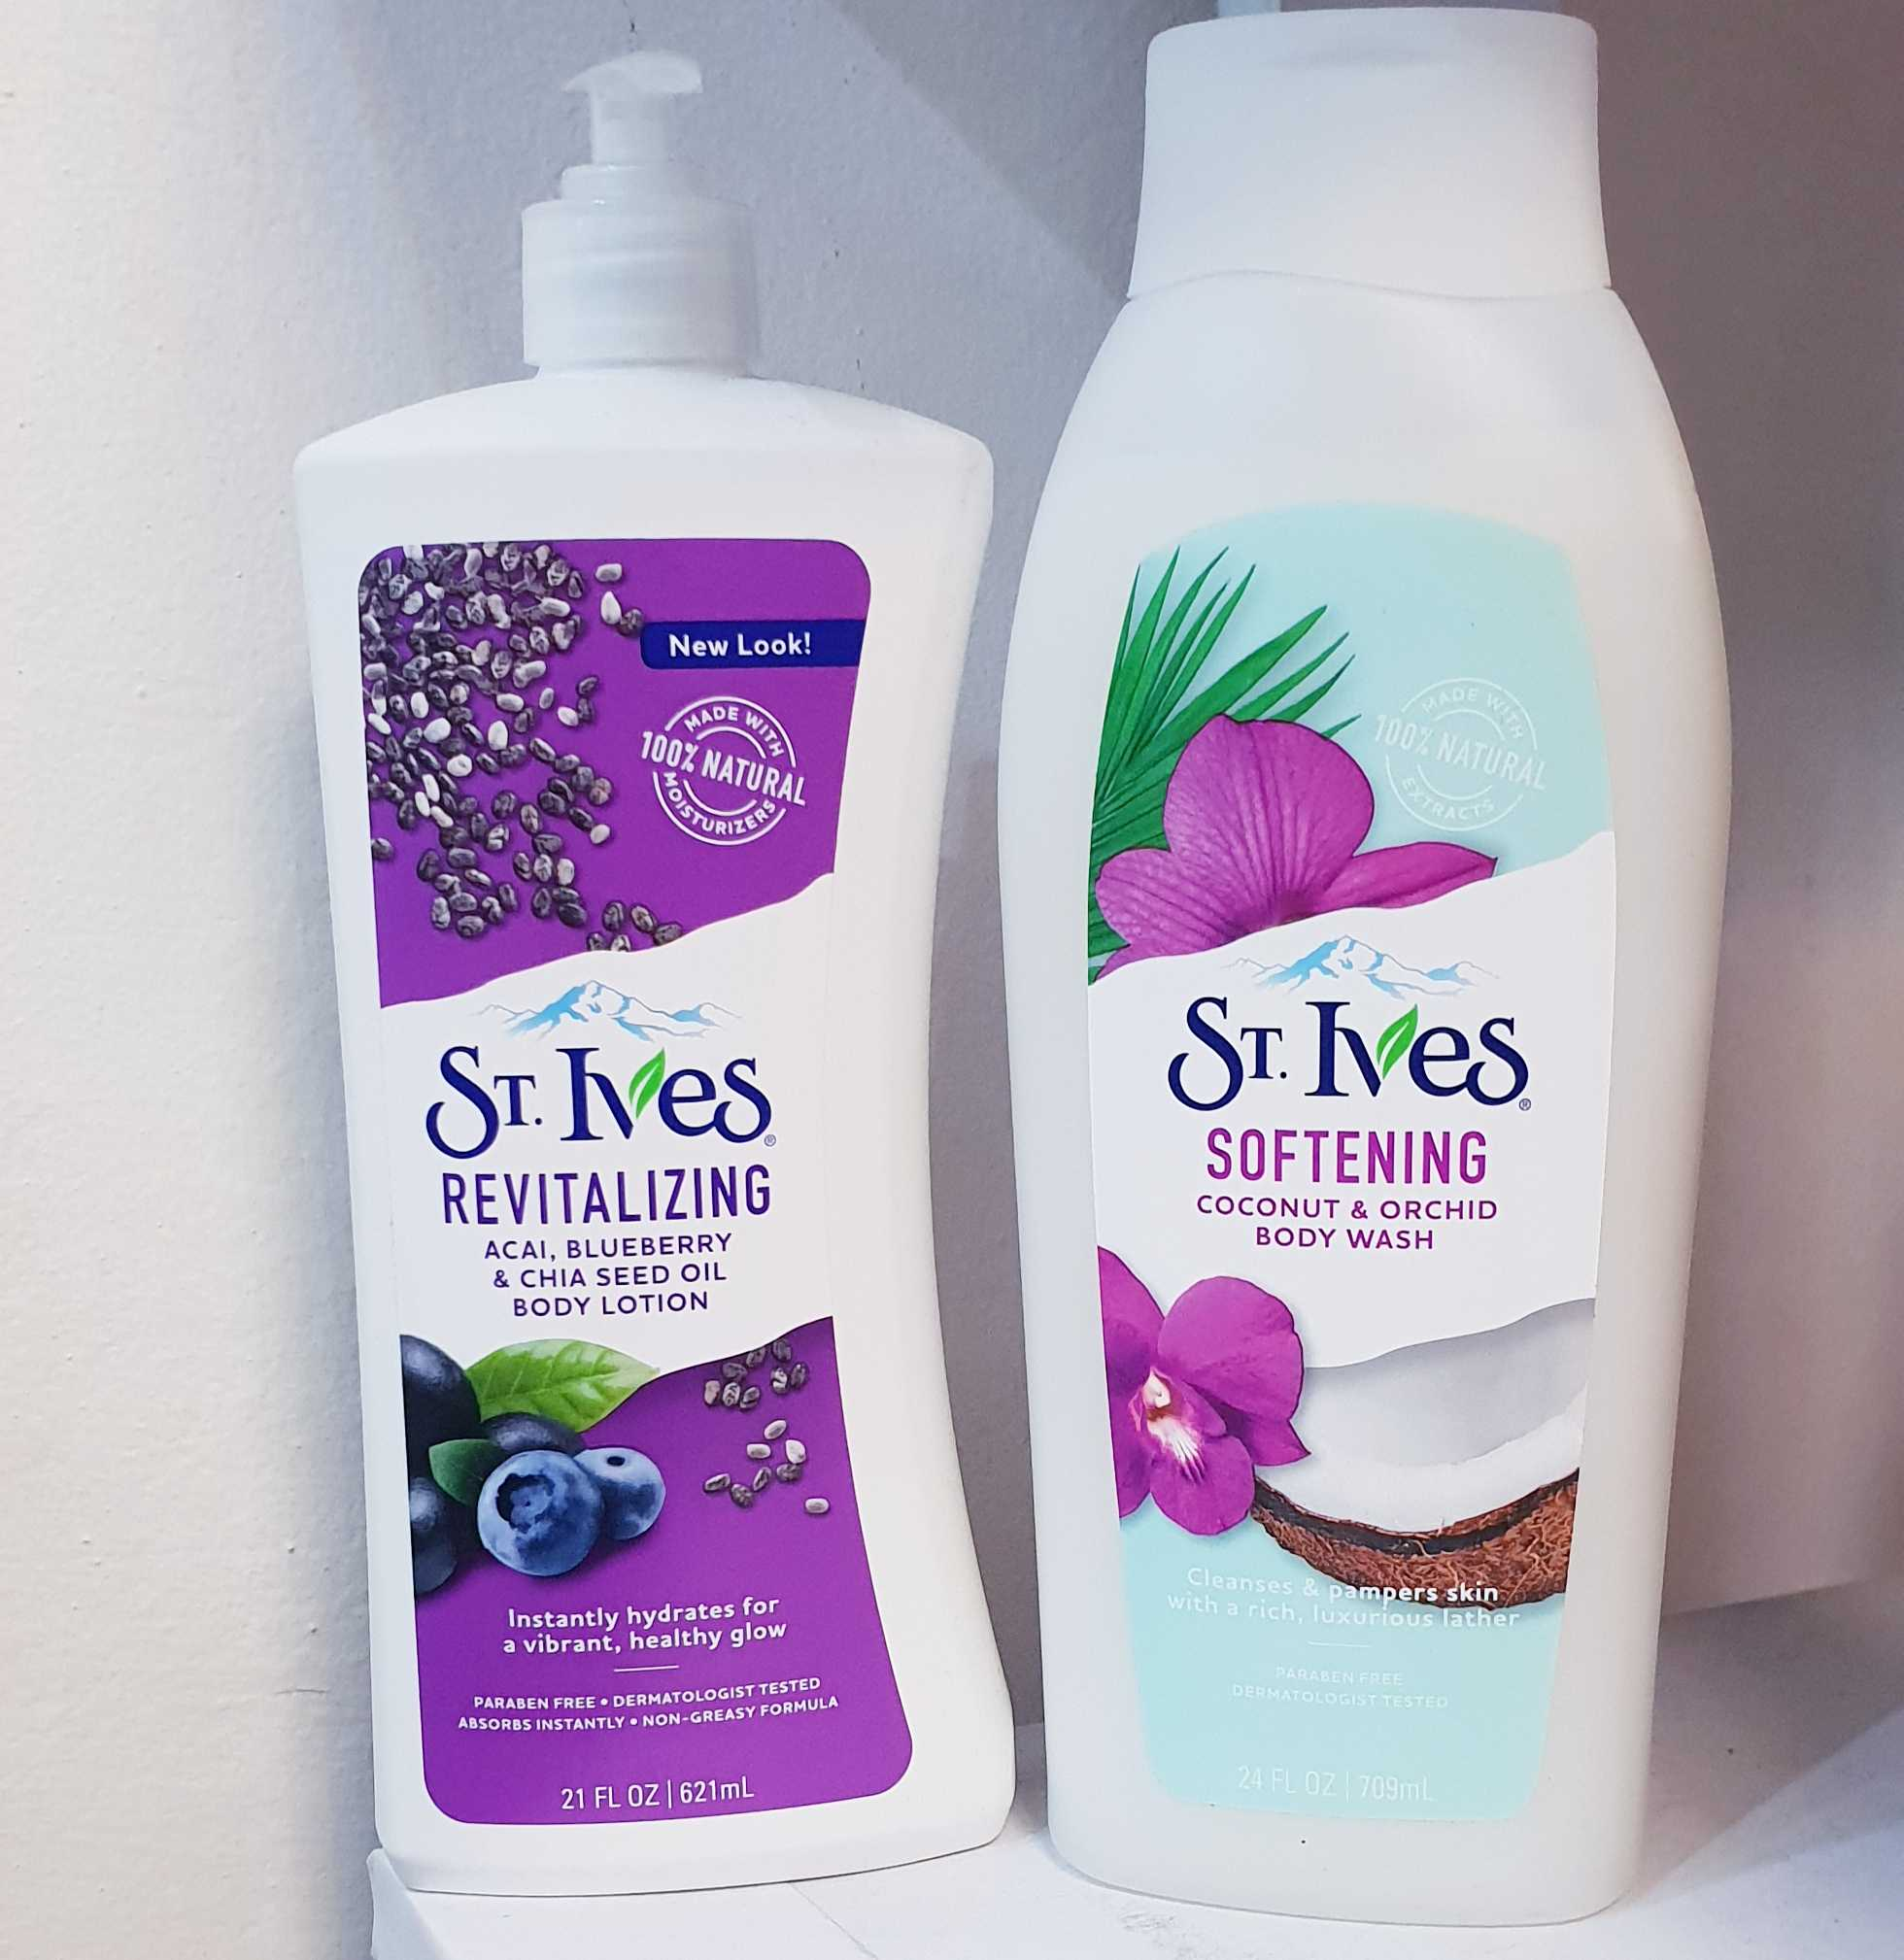 St Ives Body Wash and Body Lotion